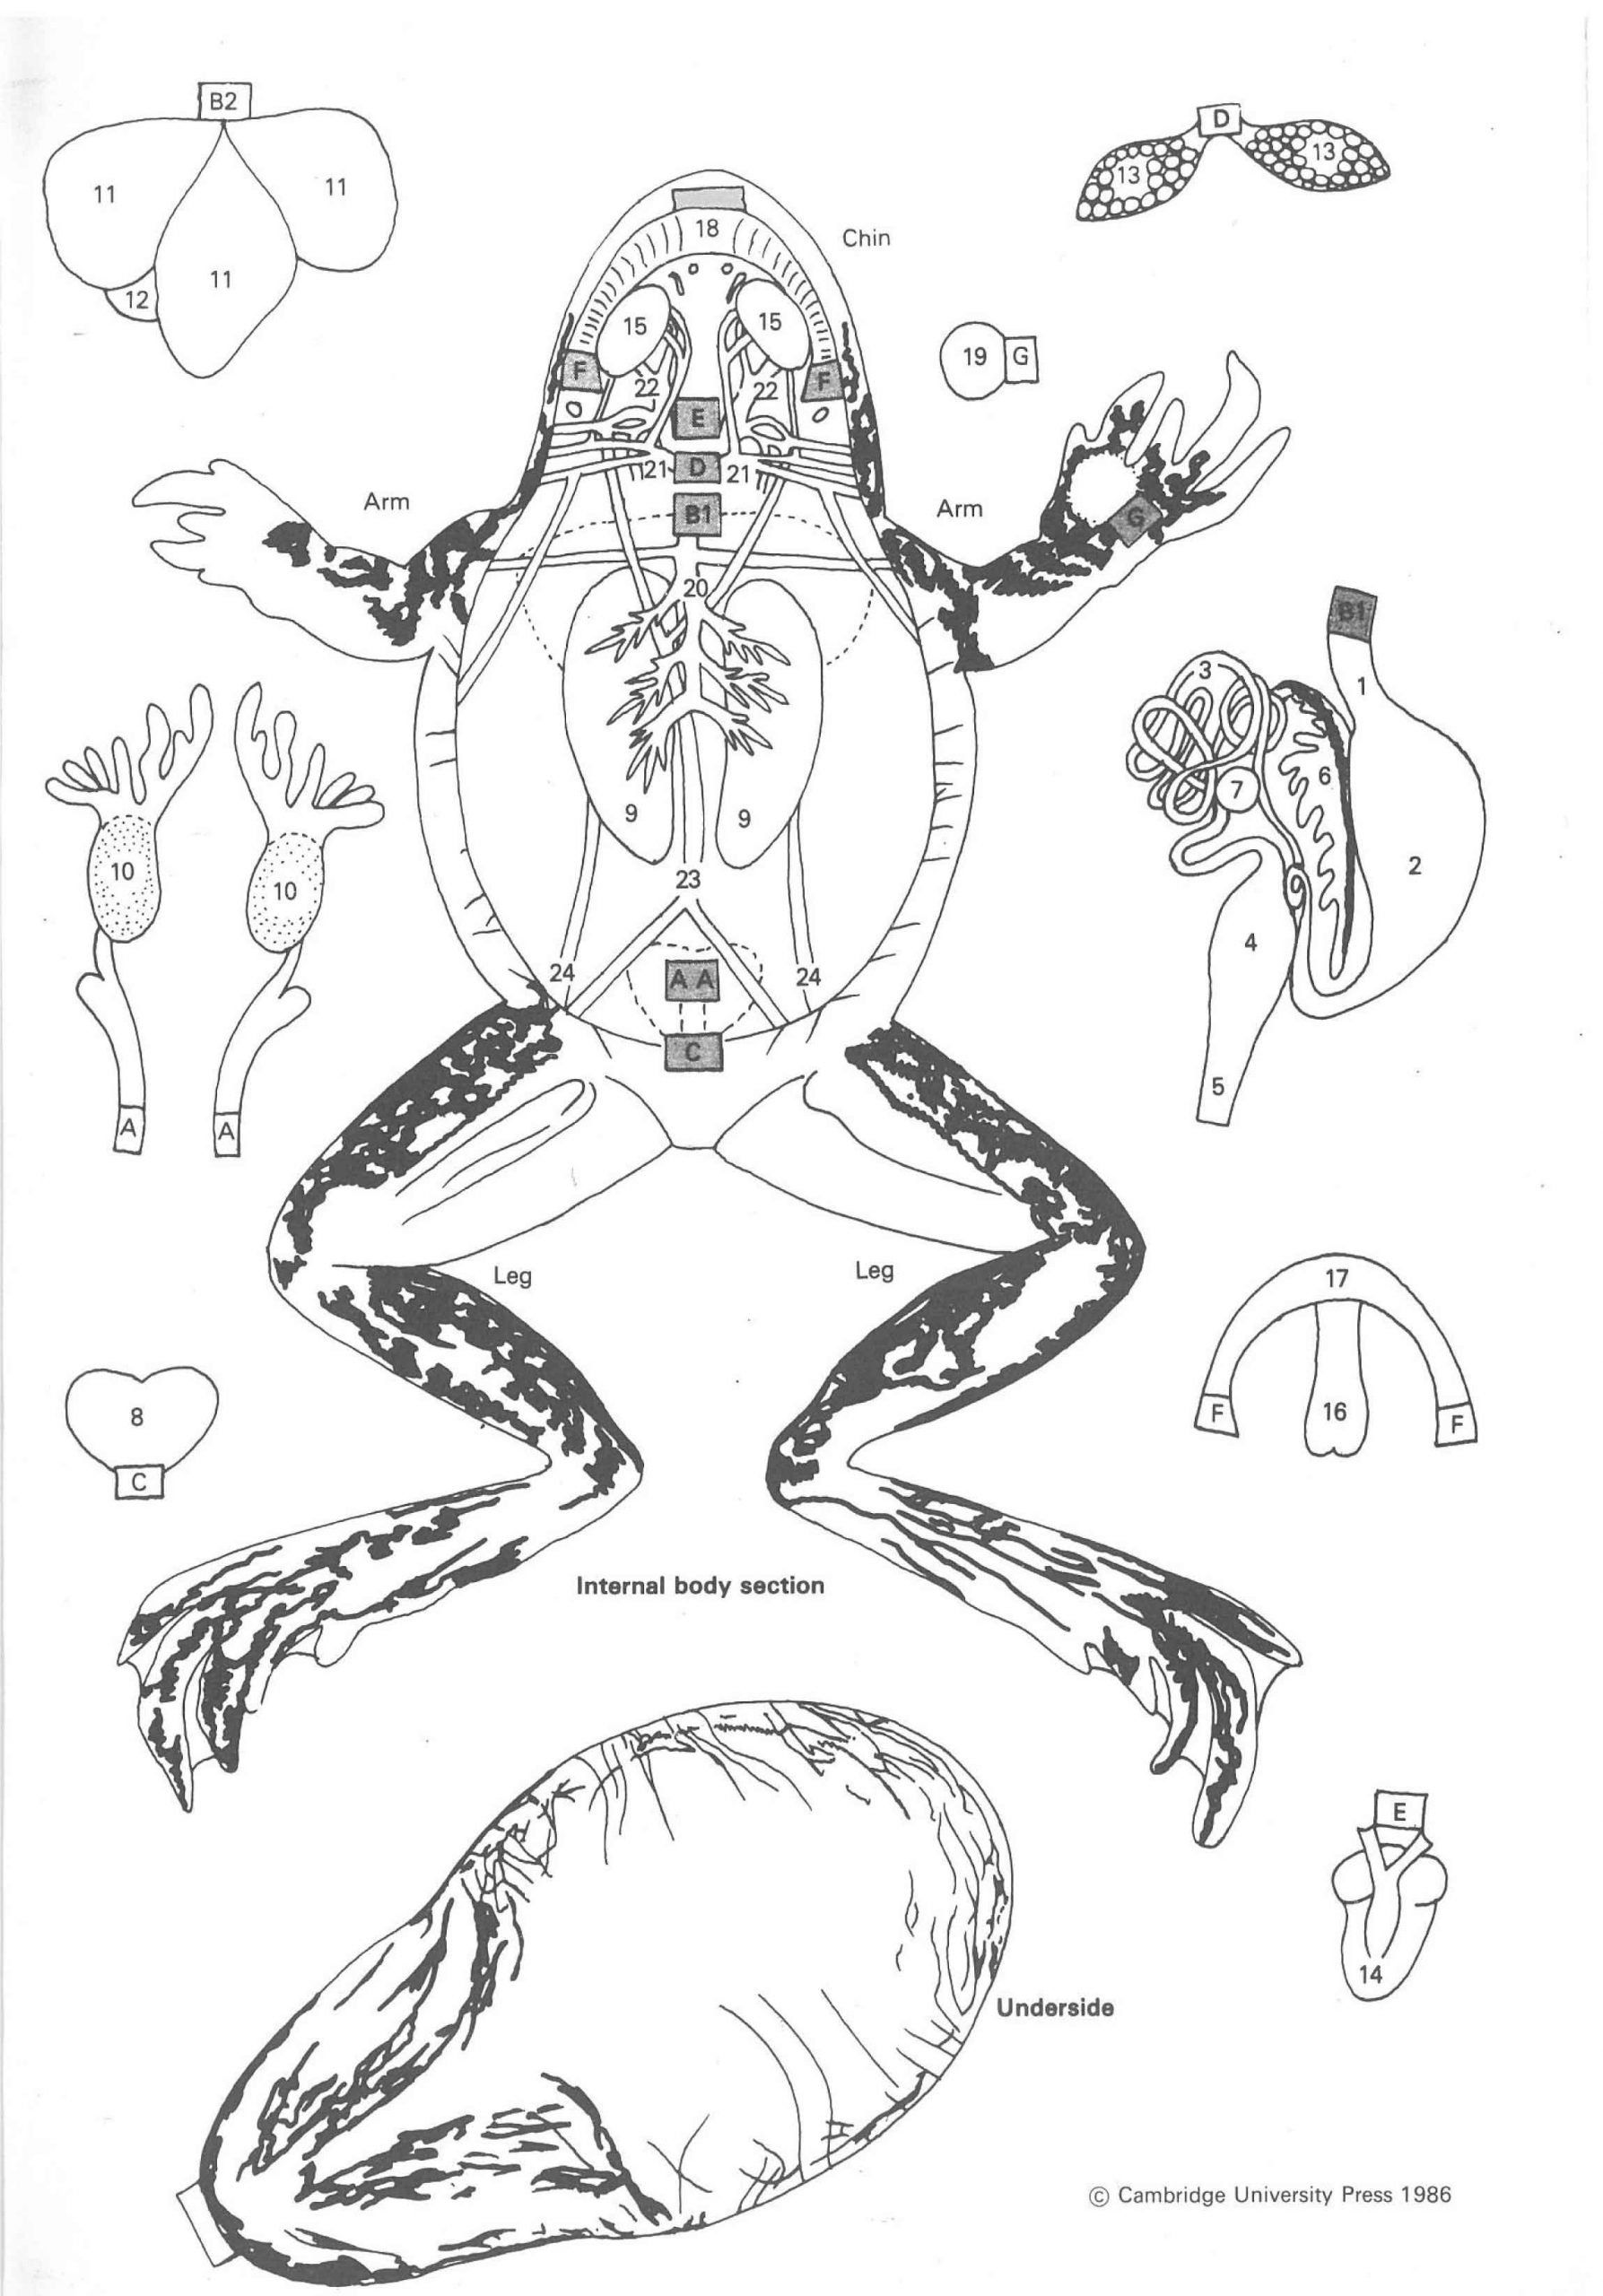 Virtual Frog Dissection Worksheet Paper Dissection Models For Life Science And Biology Ideas In 2020 Frog Dissection Frog Dissection Worksheet Biology